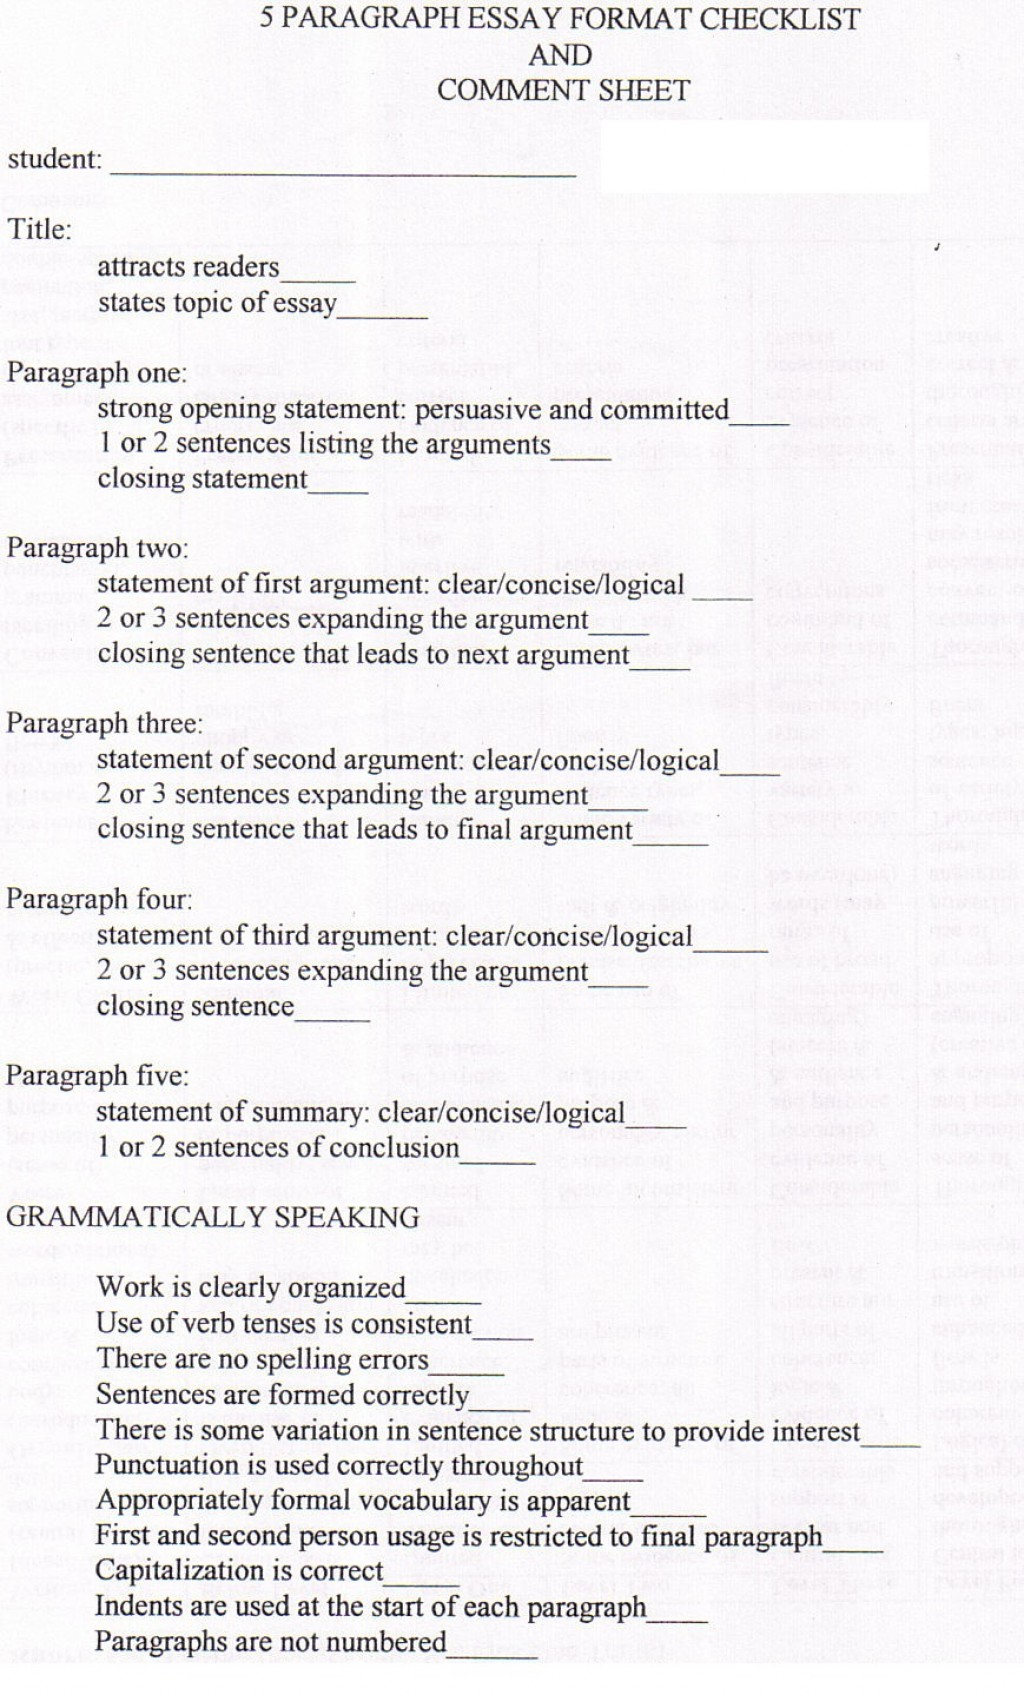 019 5paragraphchecklist Essay About Bullying Best Introduction In School Argumentative Brainly Large